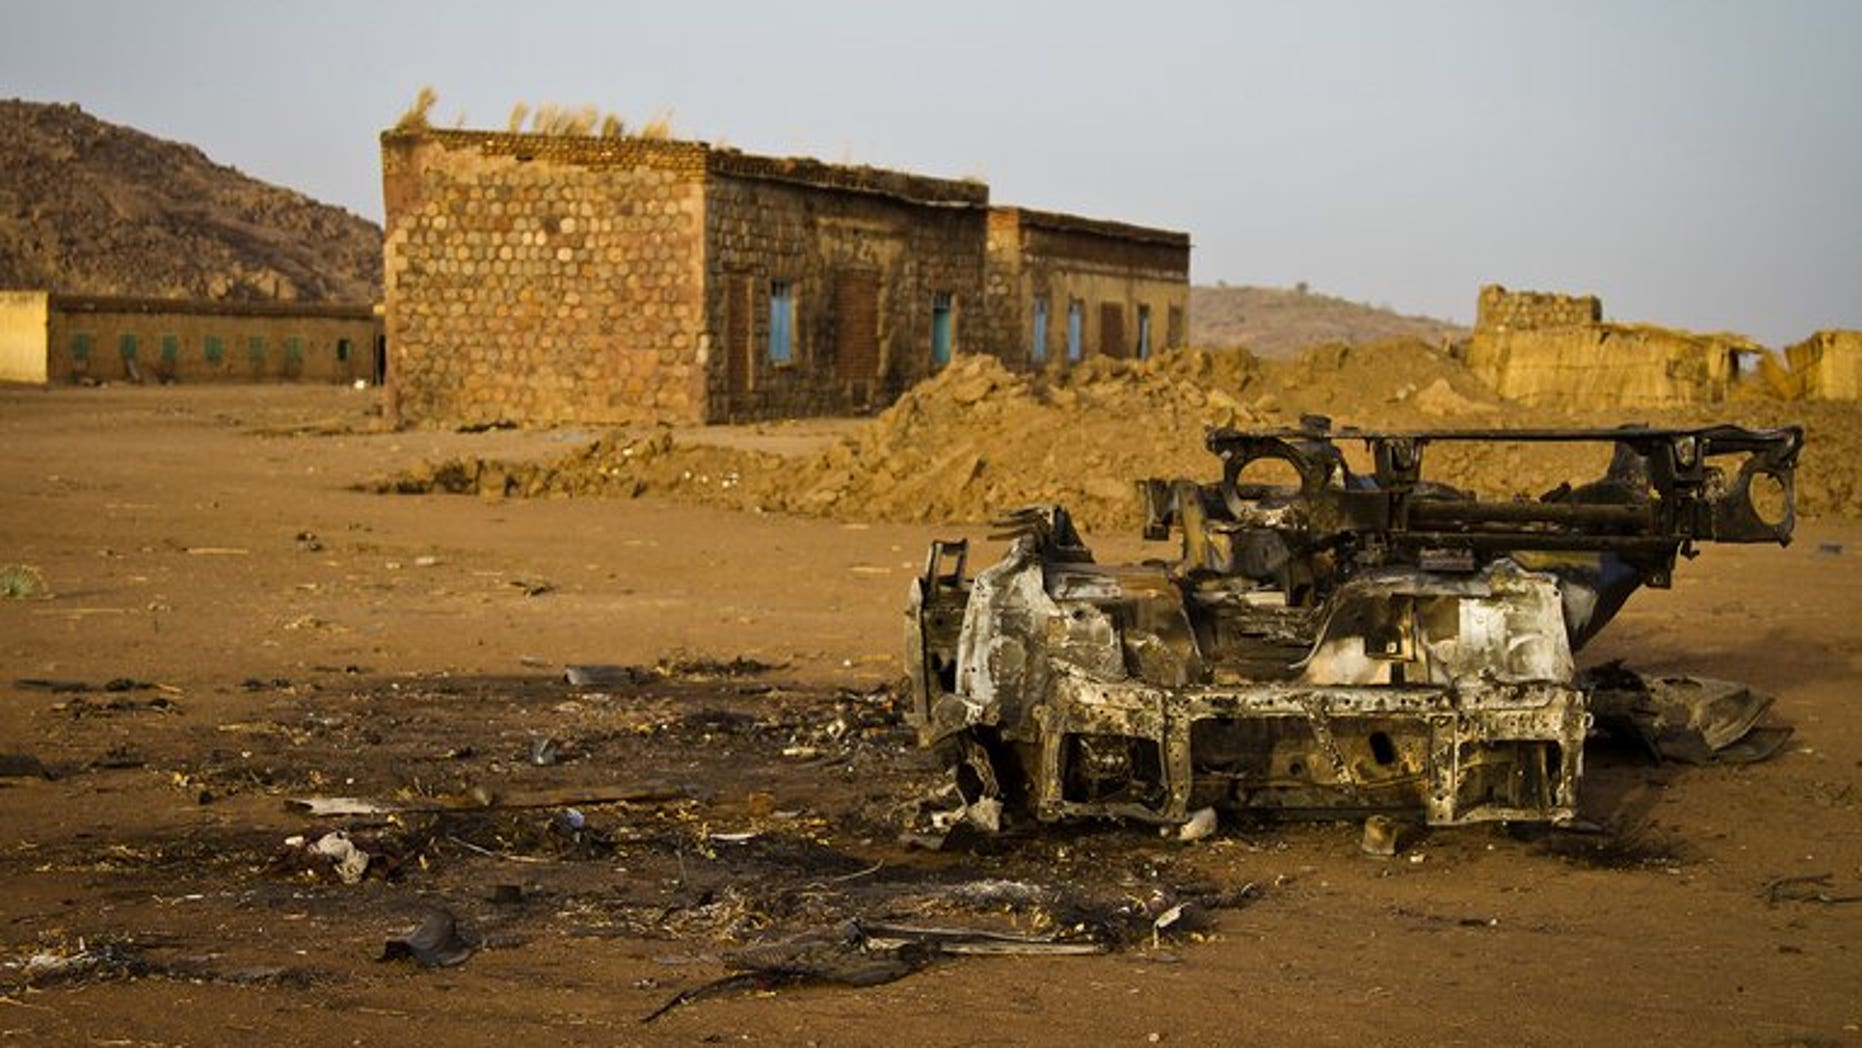 The shell of a vehicle that was hit by a bomb in the abandoned village of Trogi during fighting in South Kordofan, Sudan, is pictured on April 3, 2012. An advance party of UN troops who will support the monitoring of a buffer zone along the disputed Sudan-South Sudan border should arrive by August, the top UN peacekeeper said on Thursday.